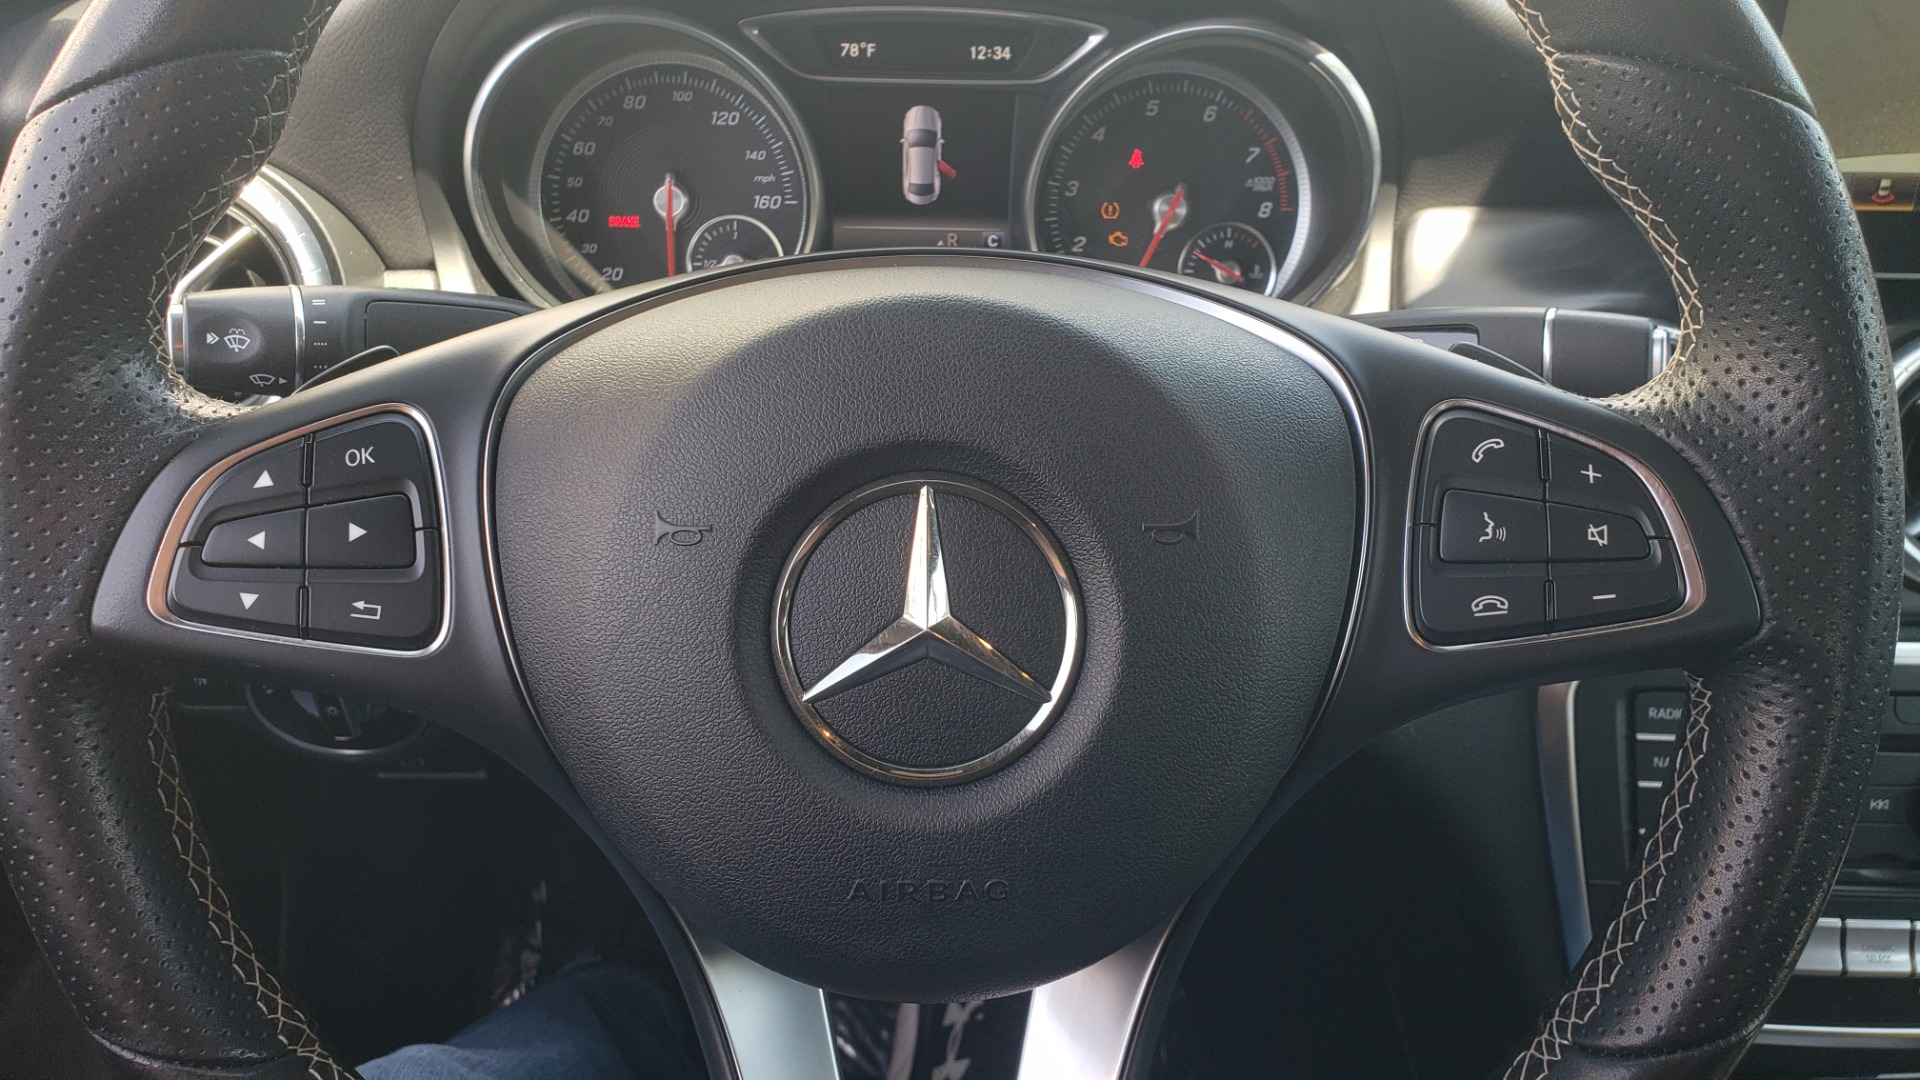 Used 2018 Mercedes-Benz CLA 250 4MATIC PREMIUM / PANO-ROOF / CONV PKG / APPLE / REARVIEW for sale $25,395 at Formula Imports in Charlotte NC 28227 38